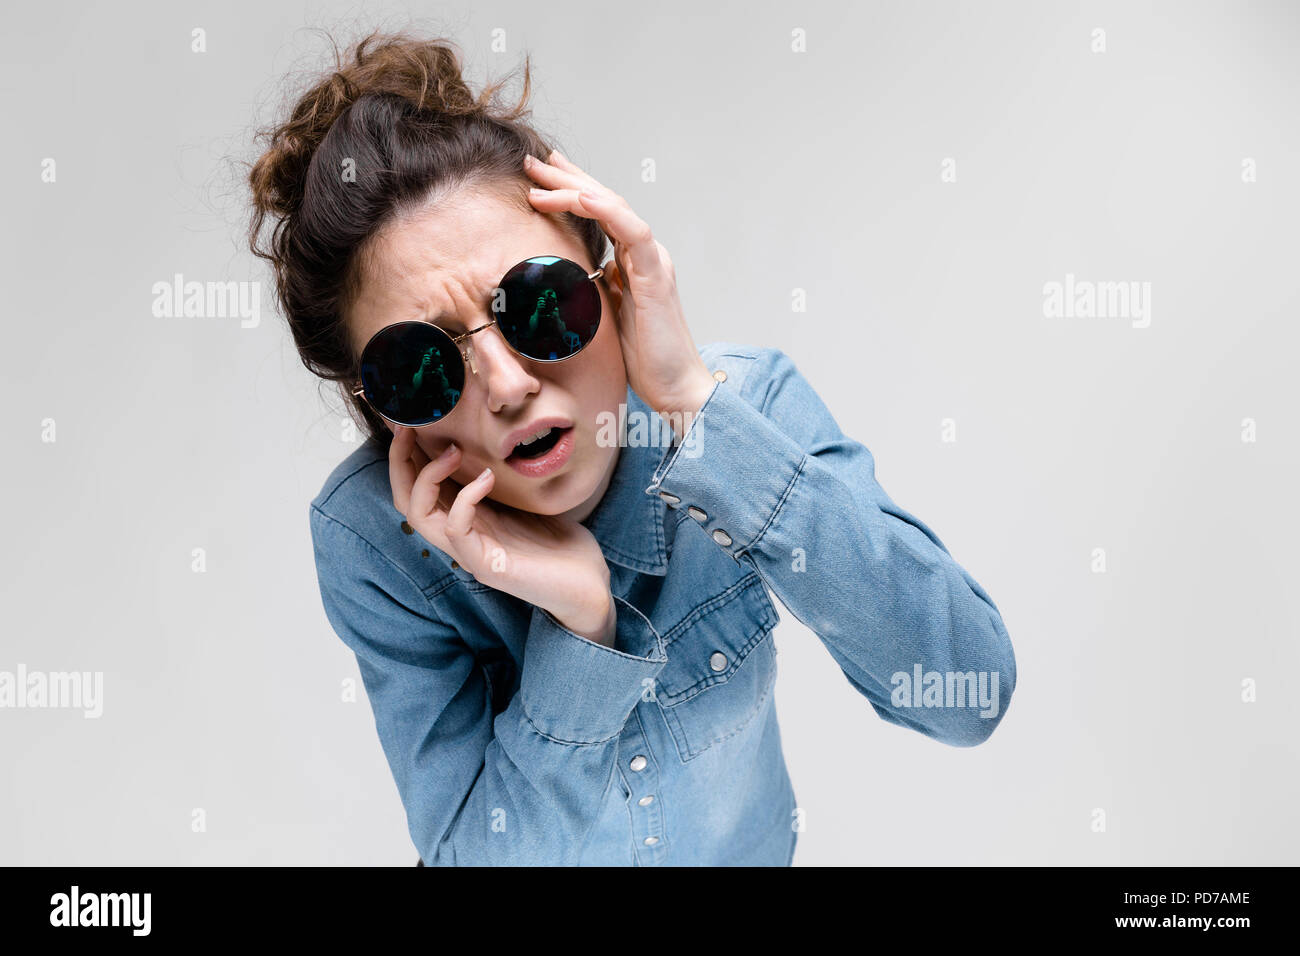 Young brunette girl in round glasses. Hairs are gathered in a bun. The girl put her hand to her head. - Stock Image